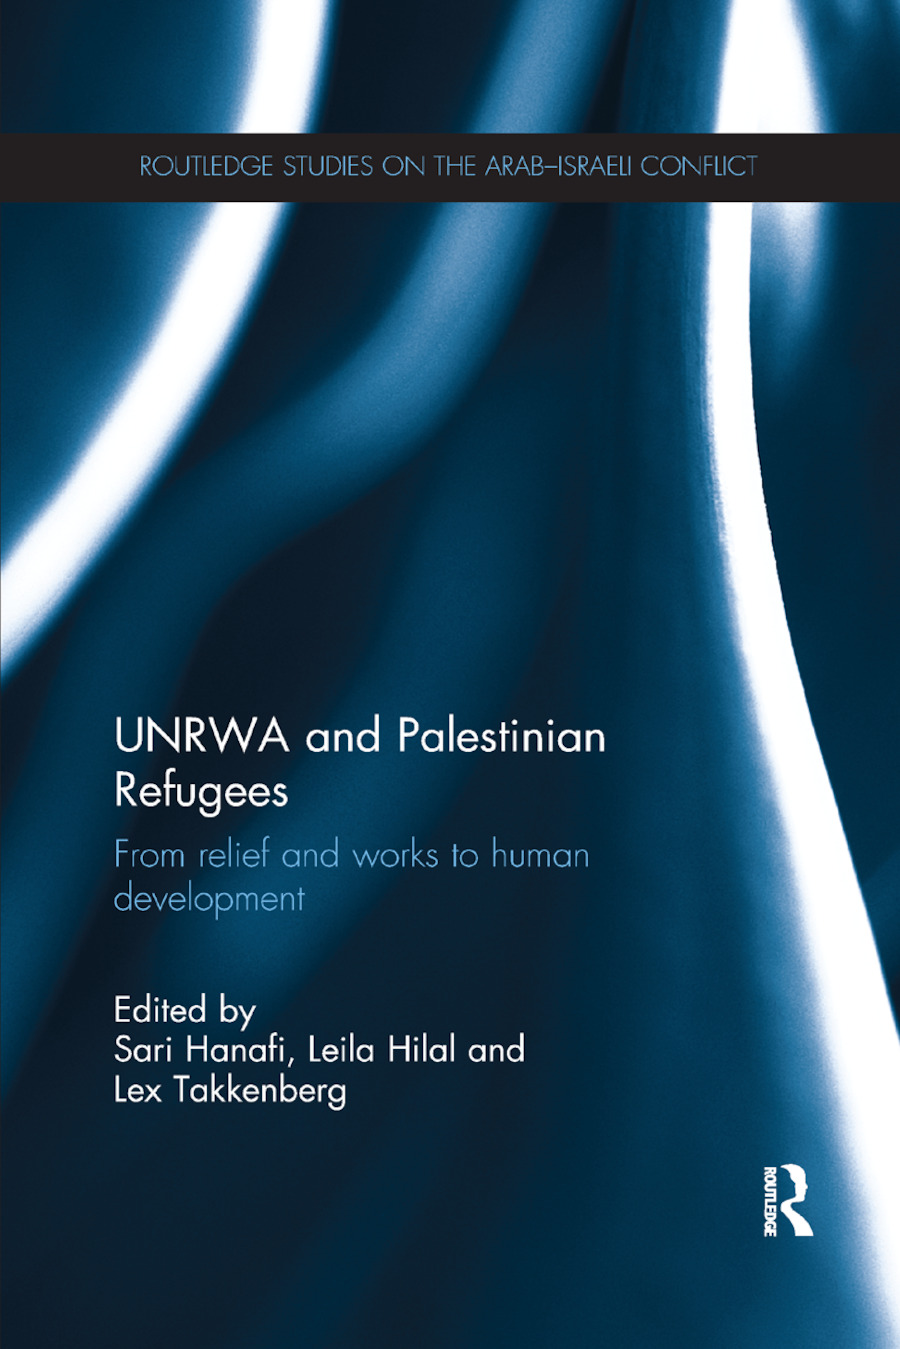 UNRWA and Palestinian Refugees: From Relief and Works to Human Development book cover